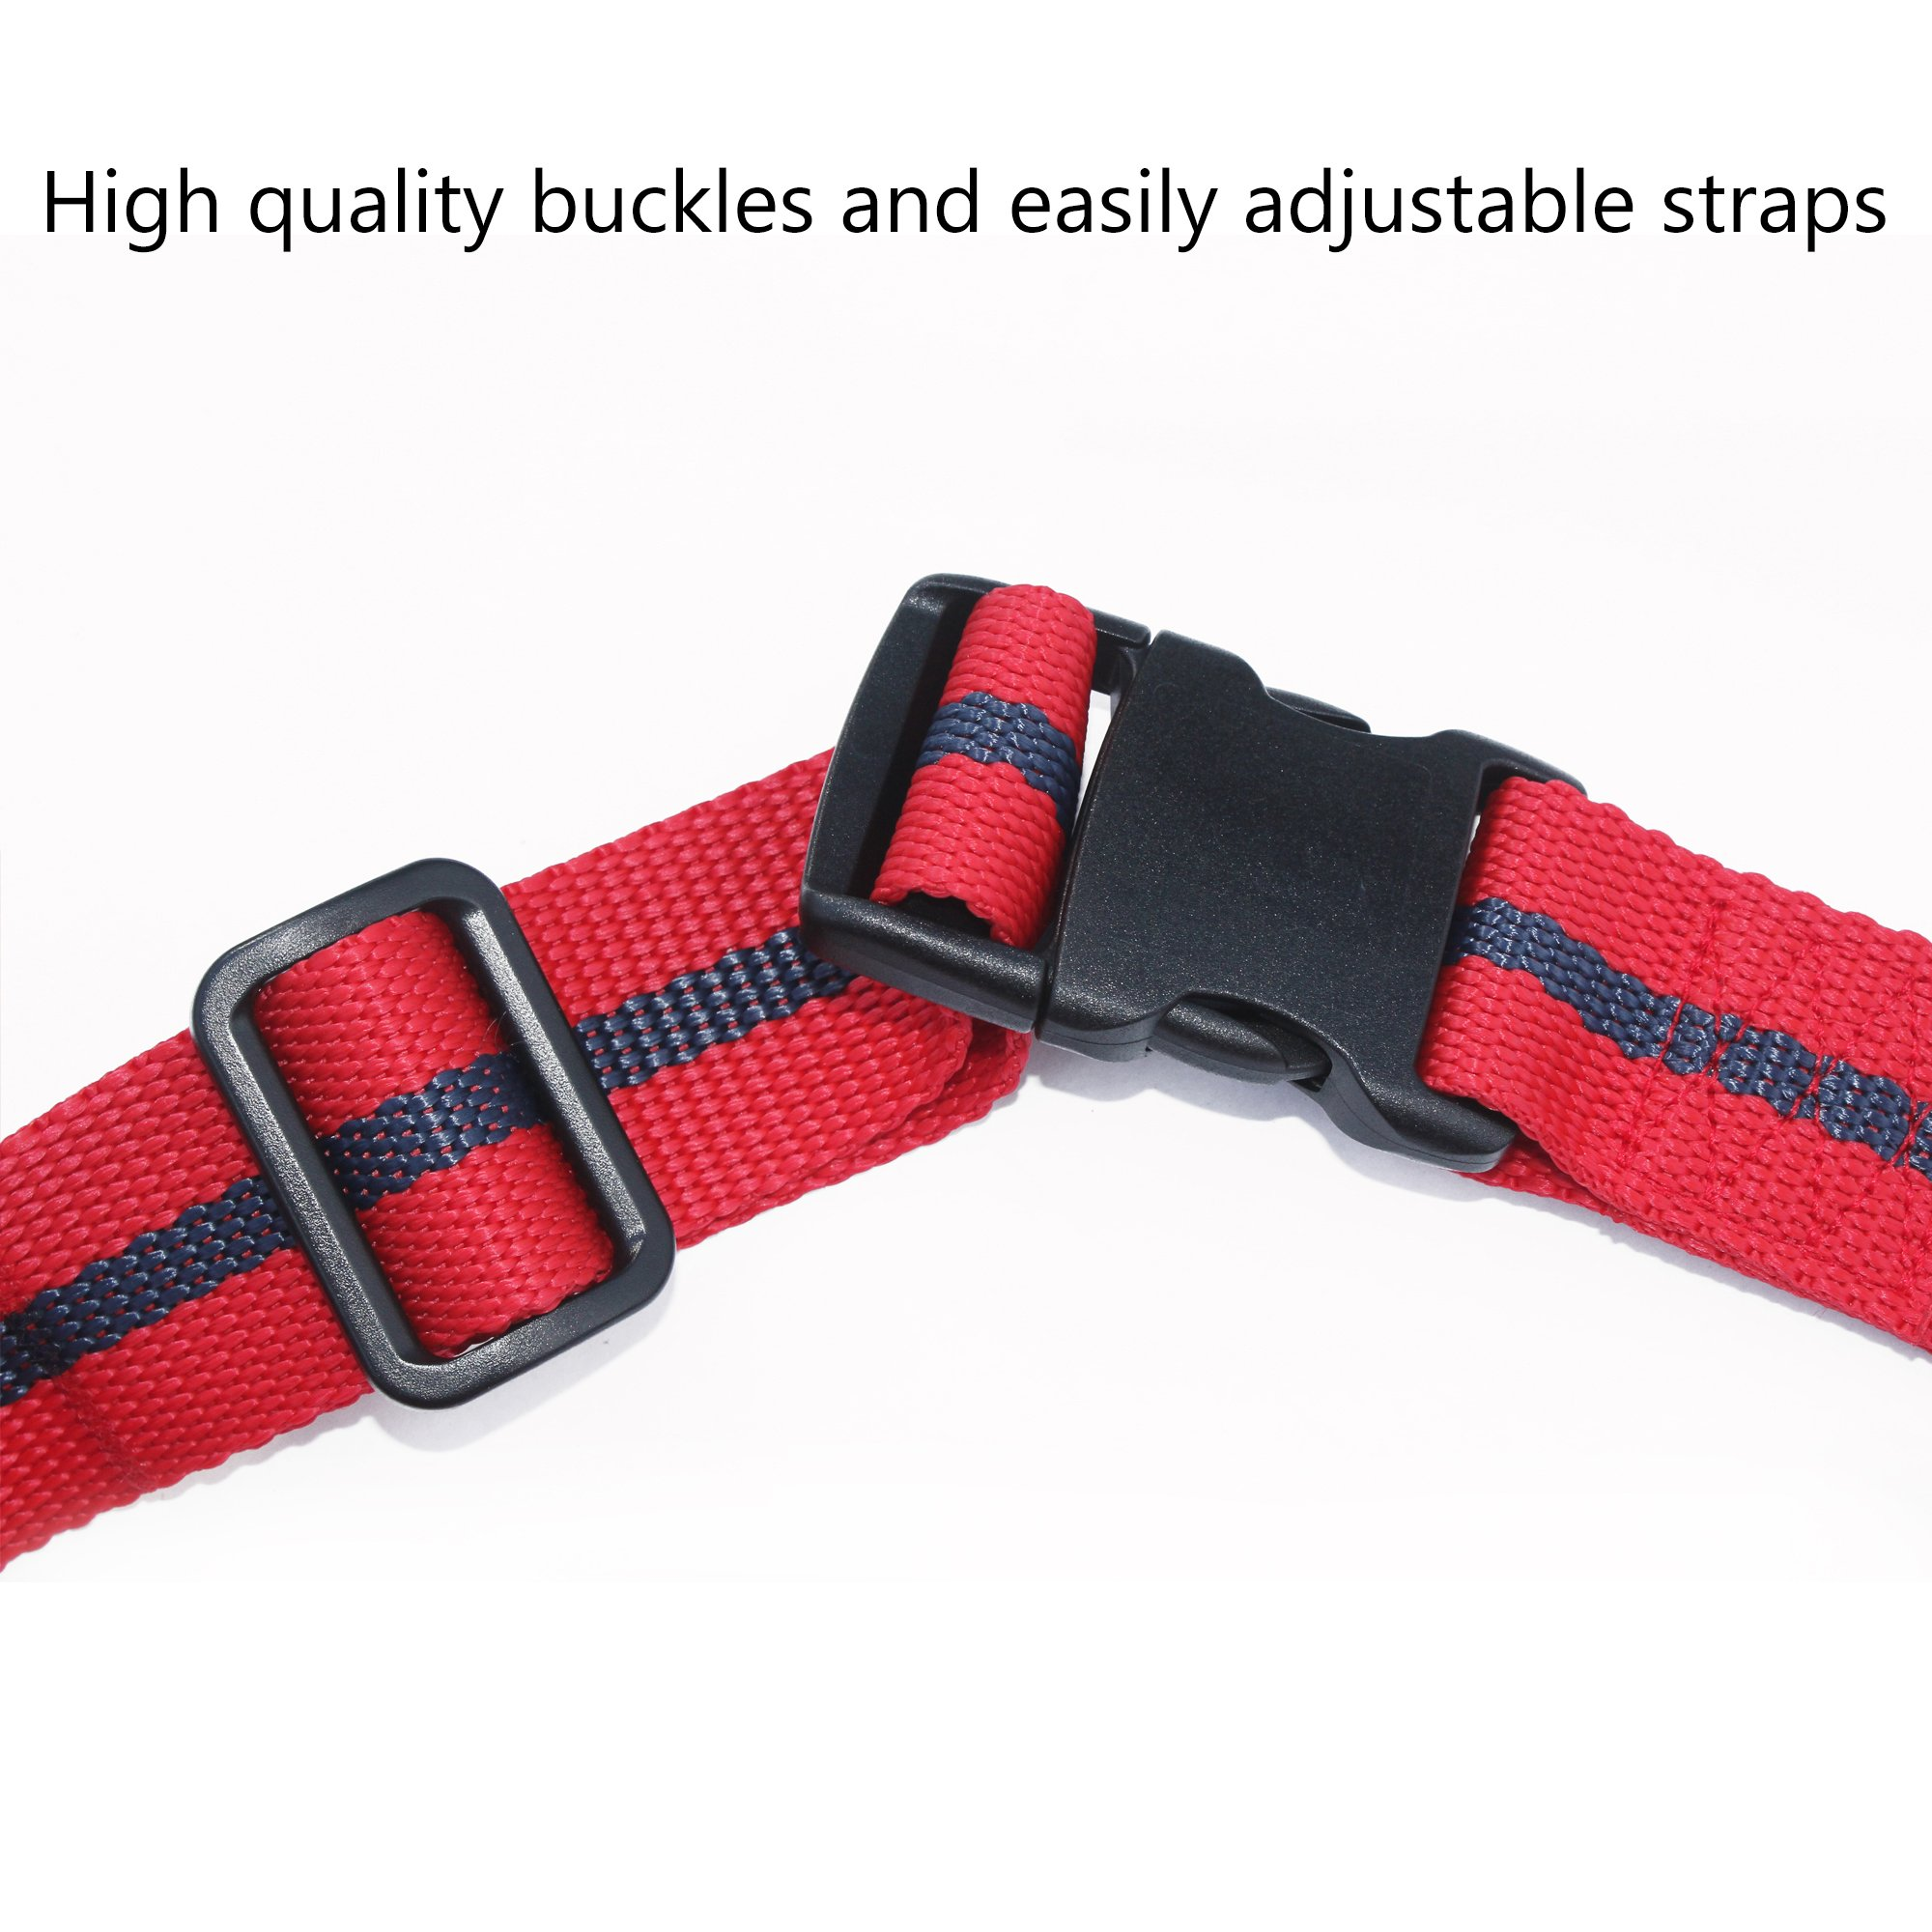 MATINGMARK Deluxe Ram Marking Harness for Monitoring Breeding Sheep & Goats by Rurtec, Crayon Block Marker System, Made in New Zealand - Standard Size (Crayon Sold Separately) by MATINGMARK (Image #8)